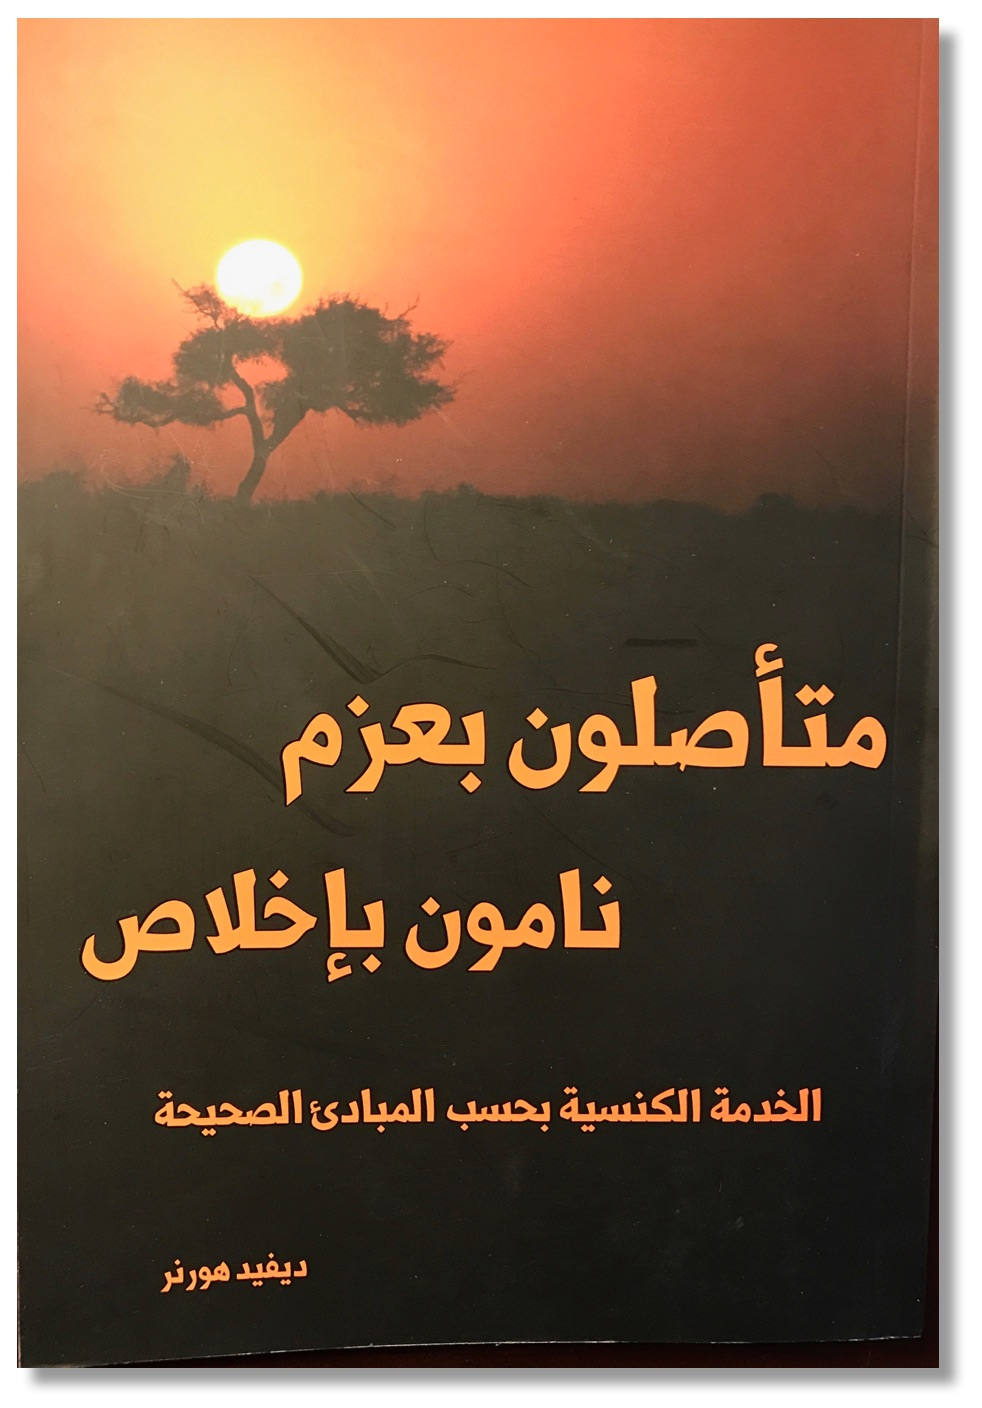 The same book was translated and published in amman, jordan in the arabic language. glad they didn't ask me to proofread either version!